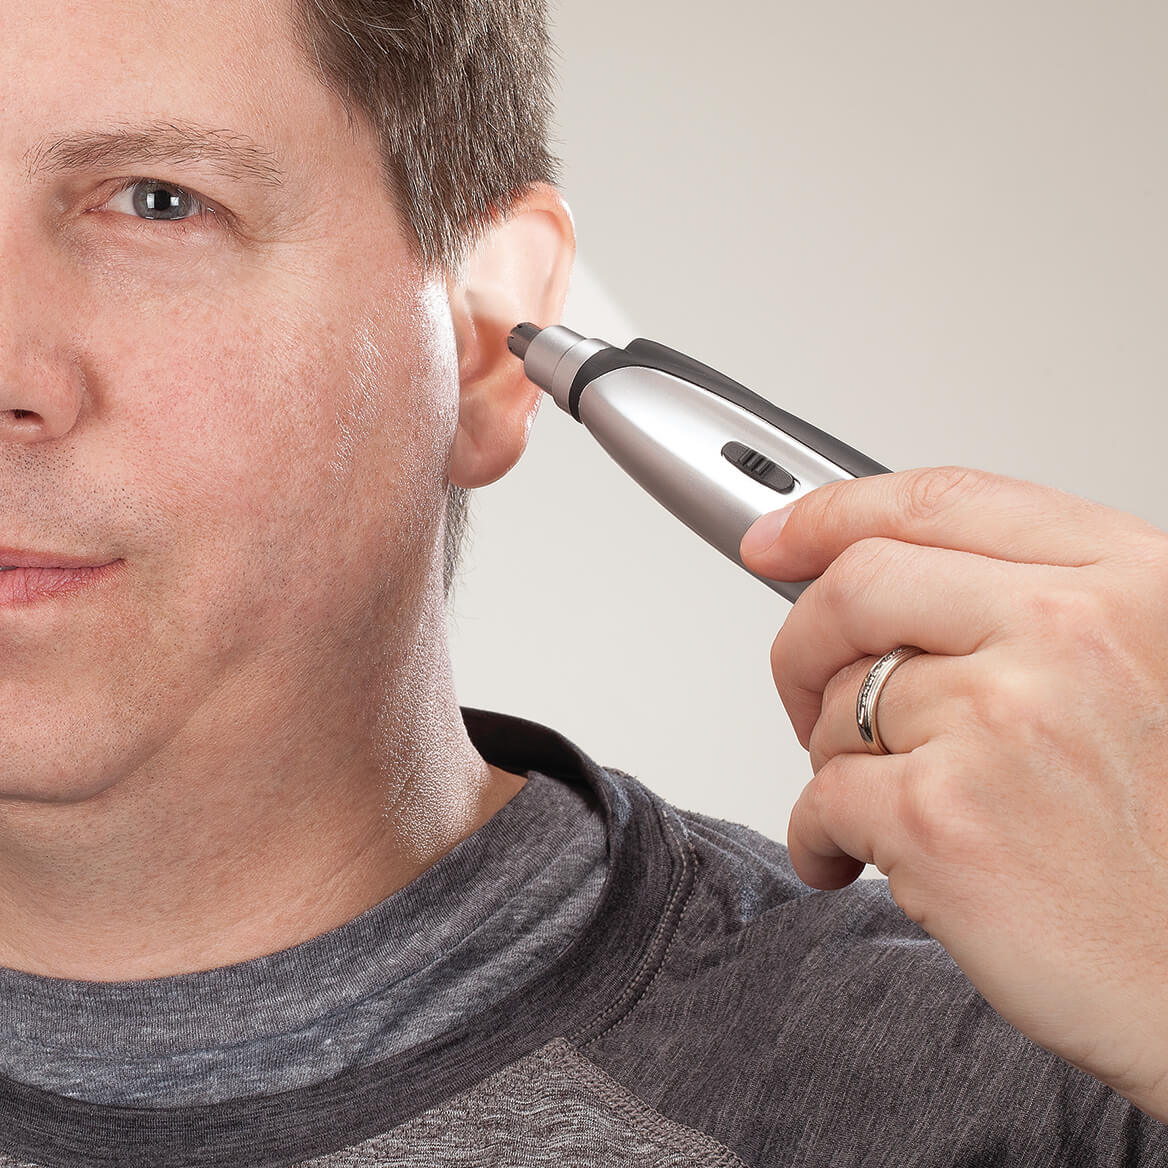 Lighted Nose and Ear Hair Trimmer-367415